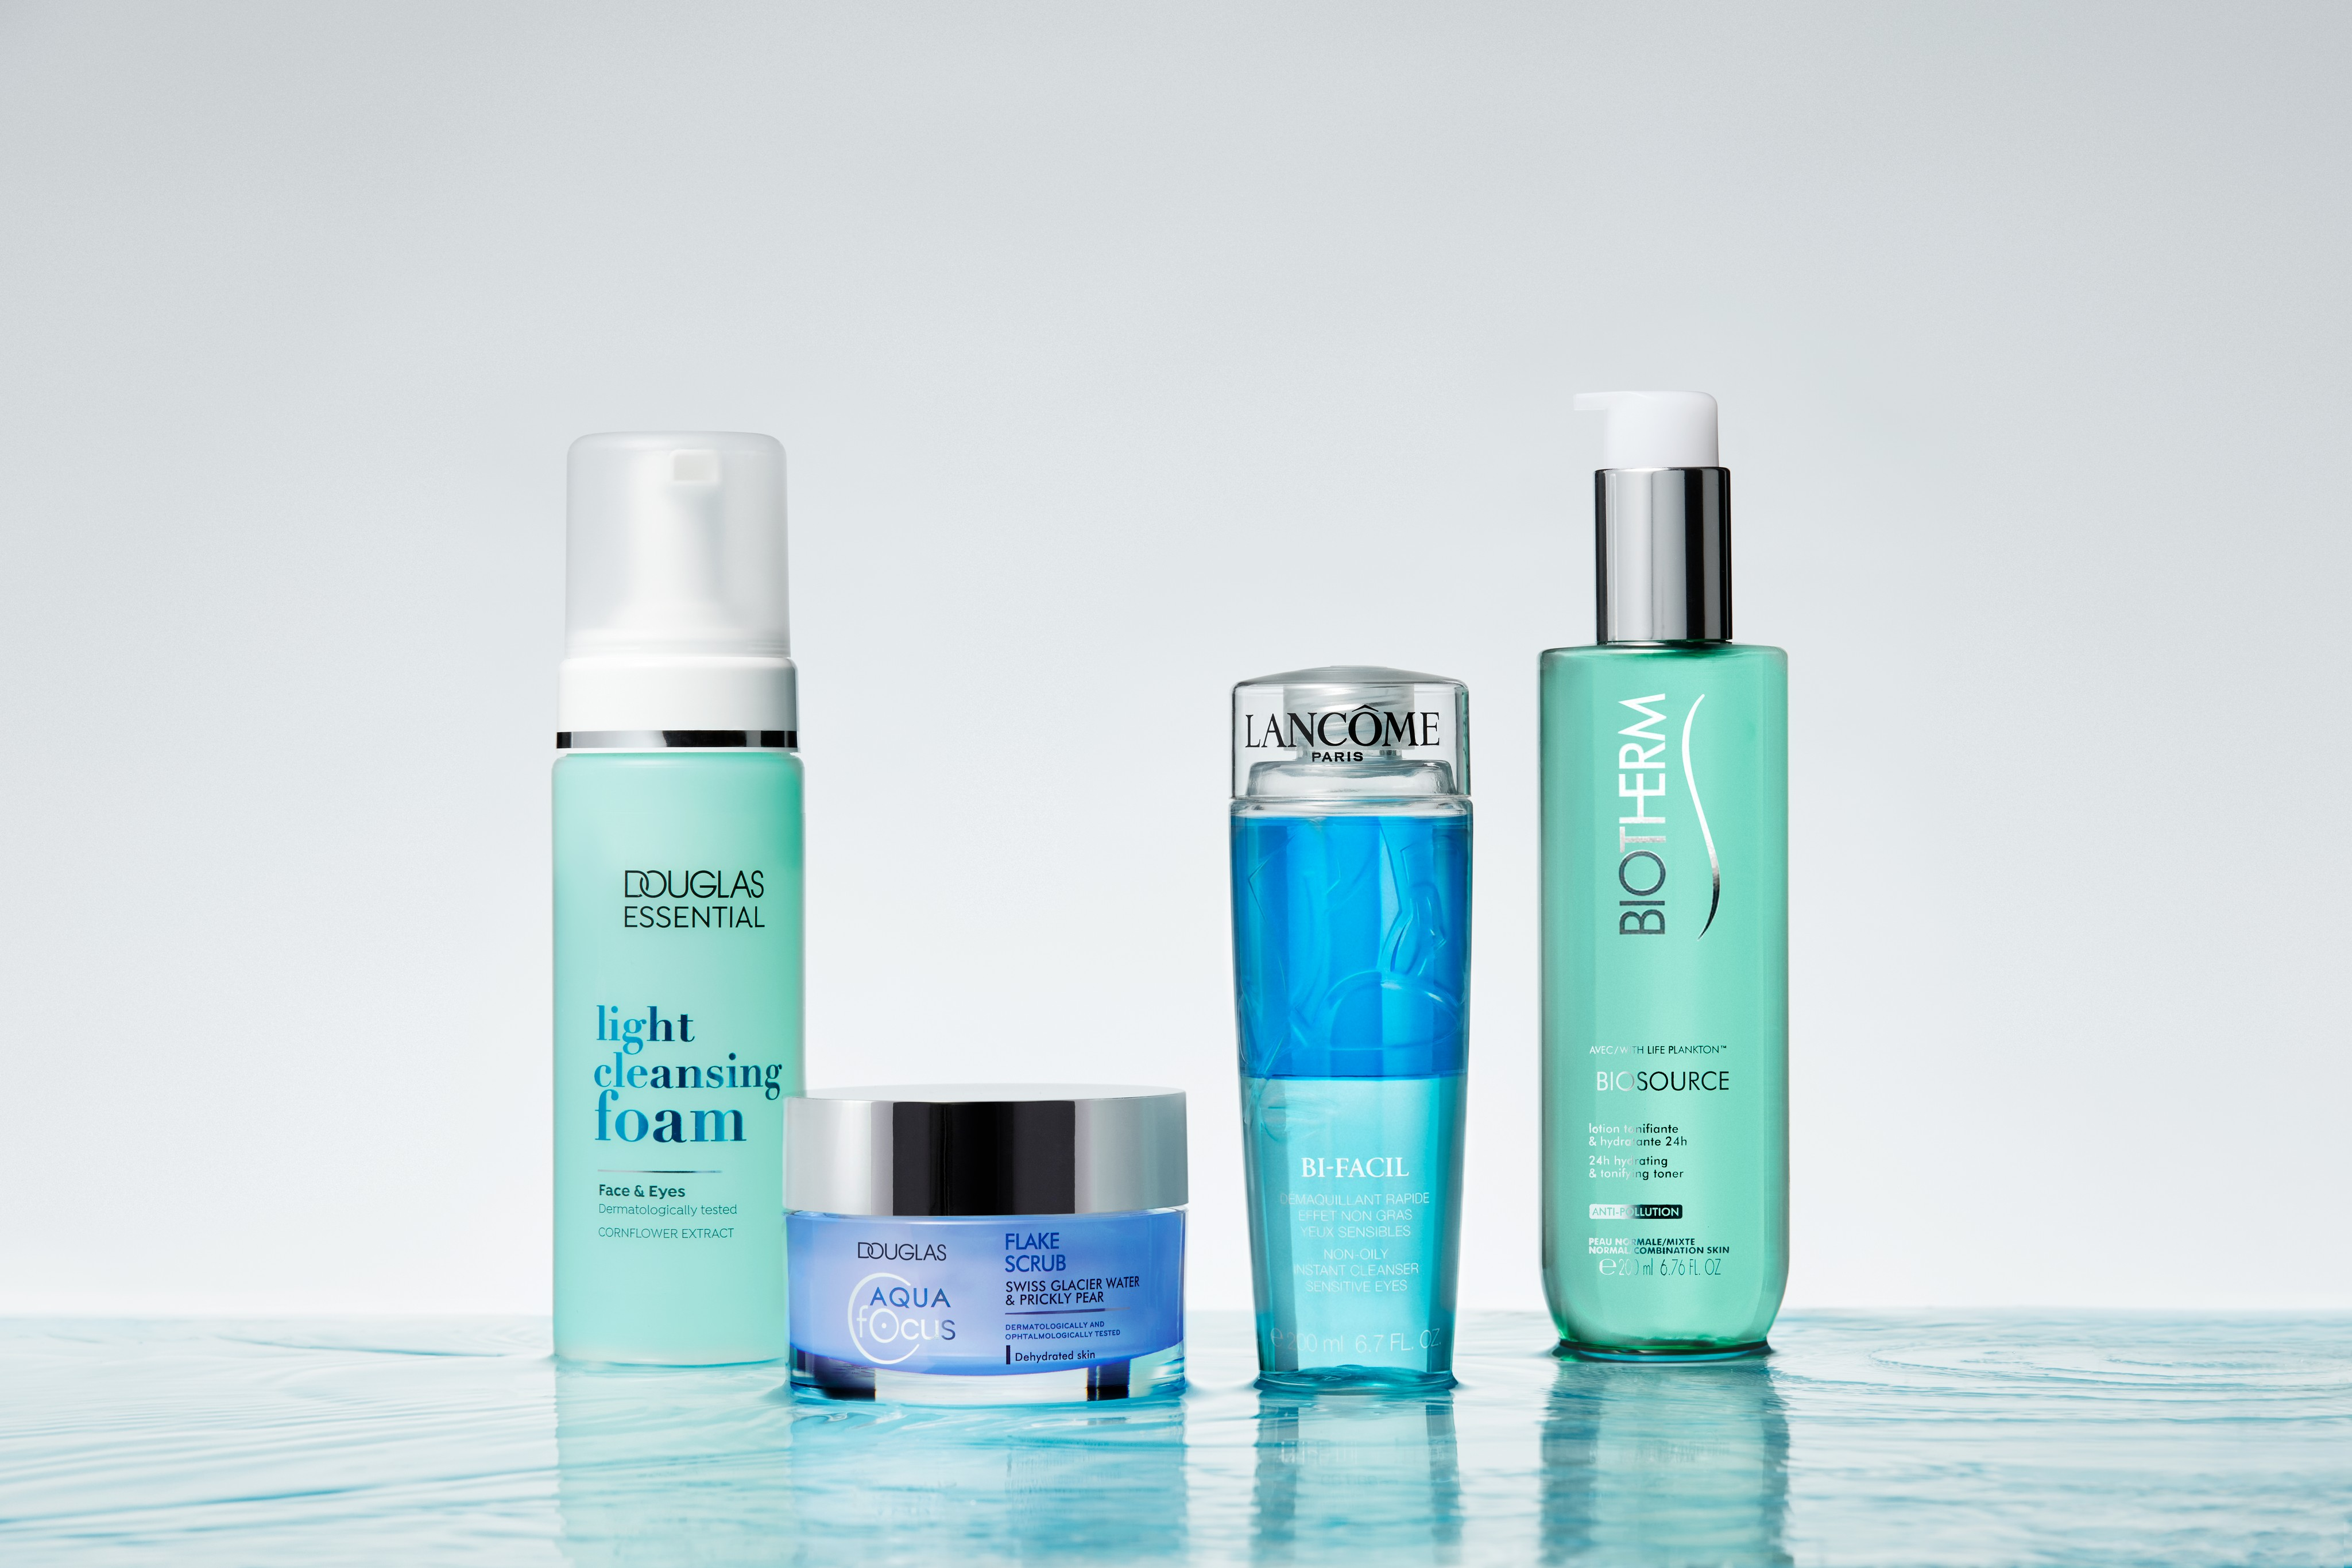 Skincare-product-blue-water-waves-douglas-lancome-biotherm-unlimited-Web-Rendition